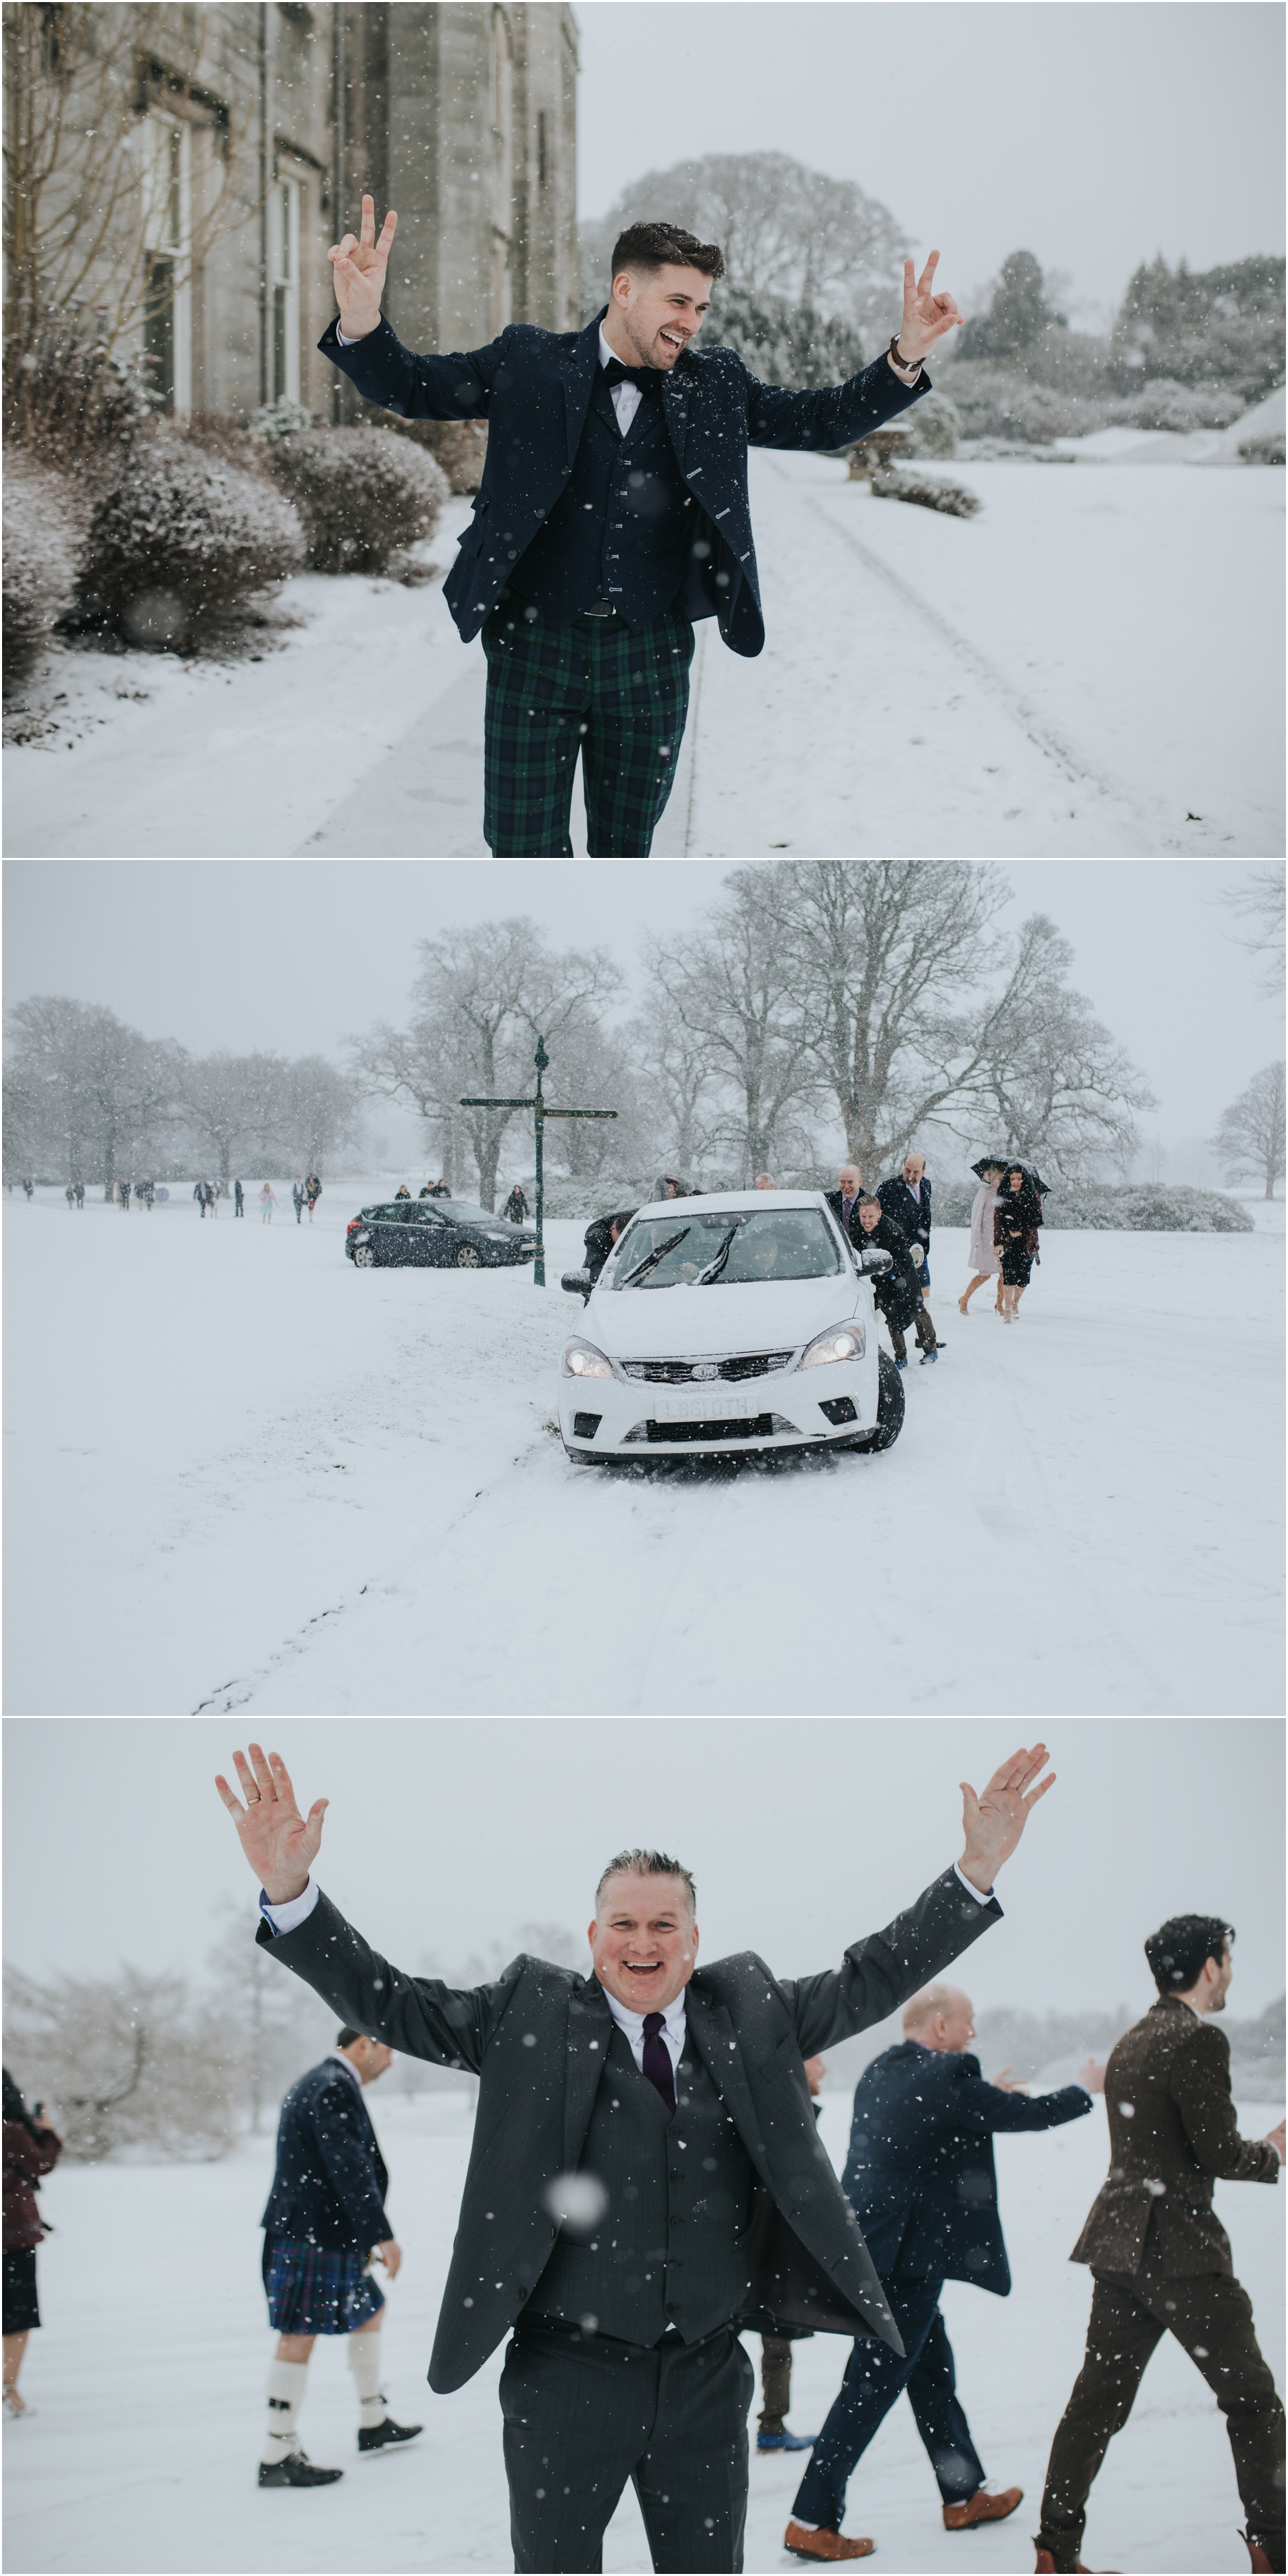 dundas castle wedding at winter in the snow